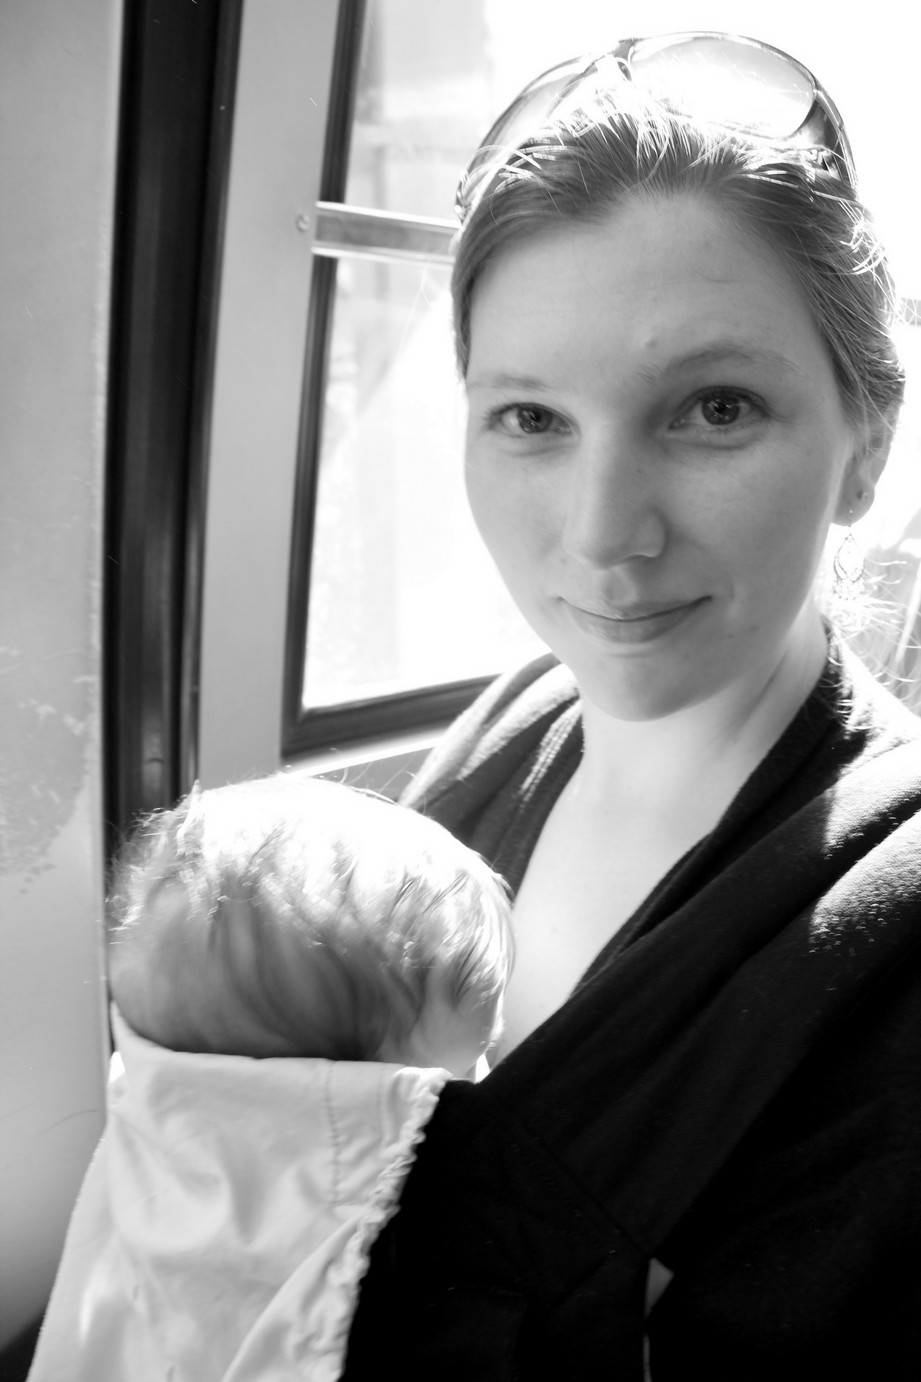 Nicole and Baby B in B&W